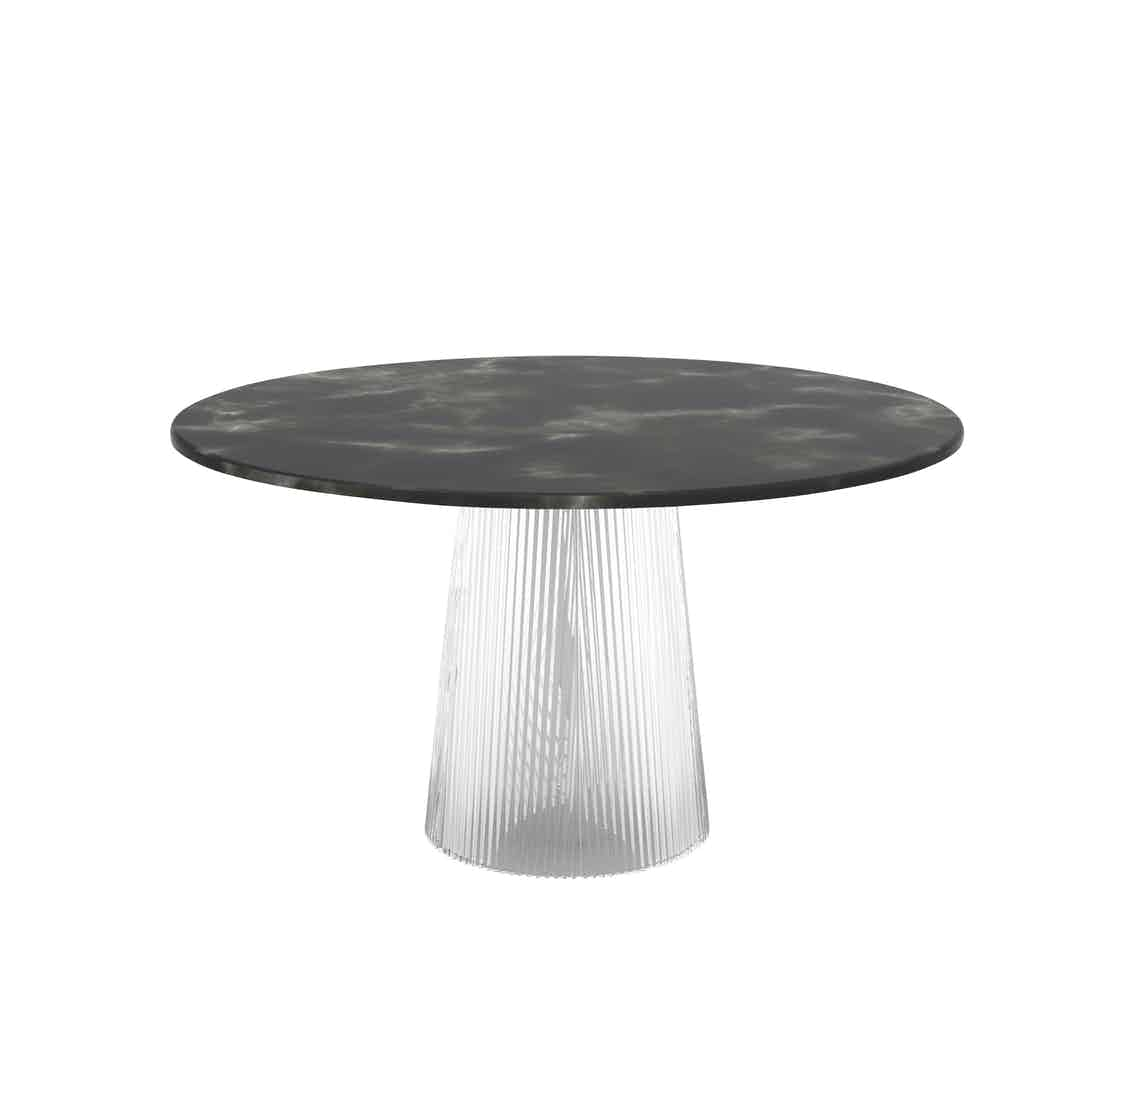 Pulpo-bent-dining-table-black-top-haute-living